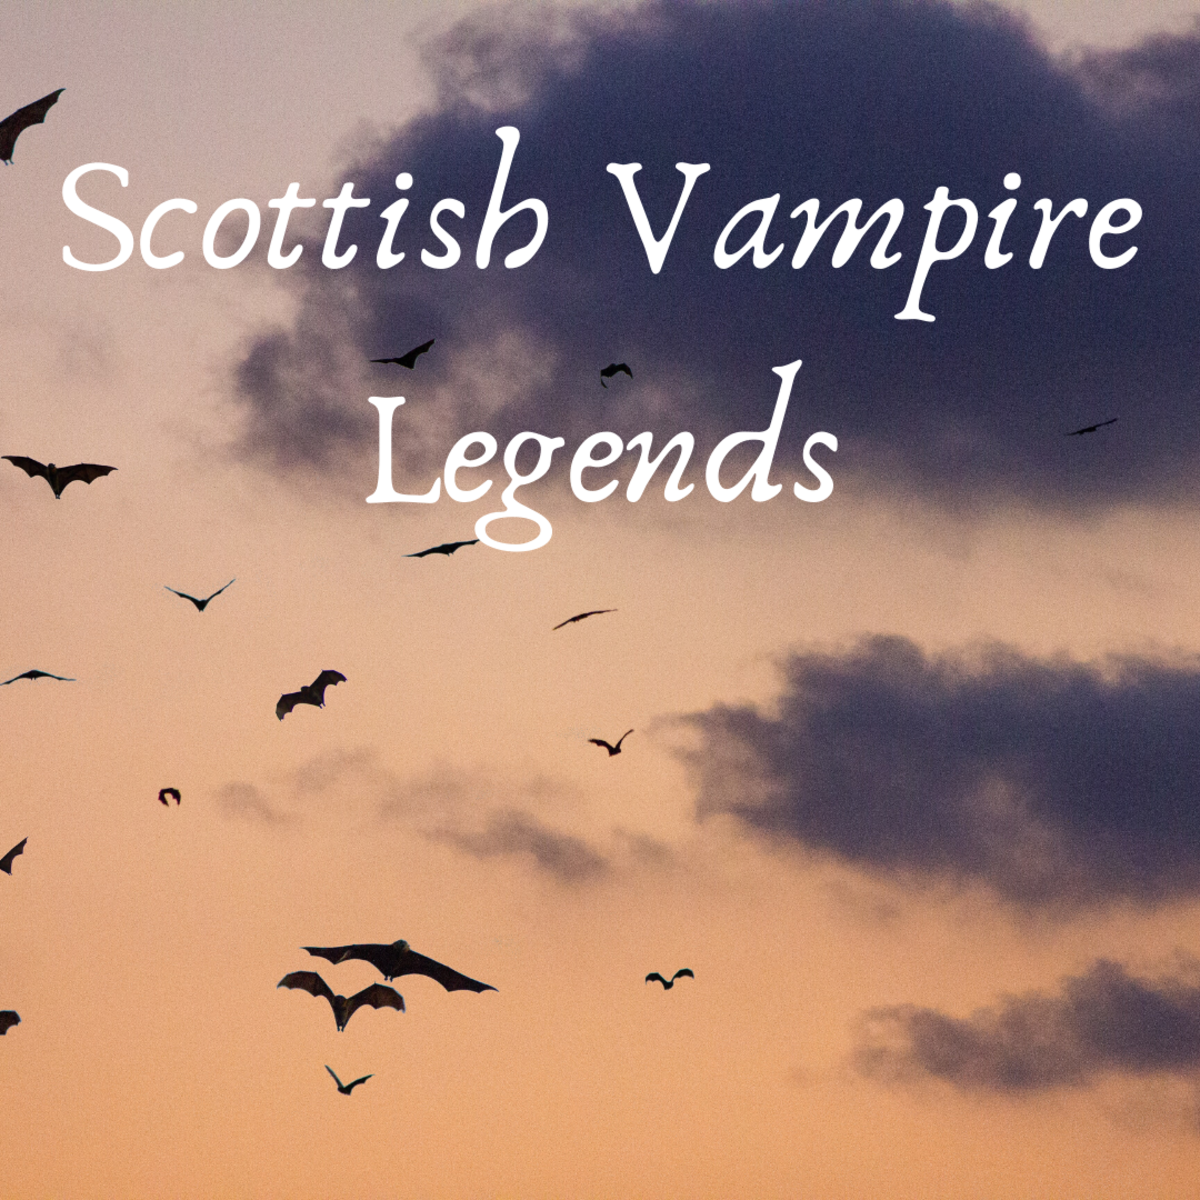 Scottish Vampire Legends